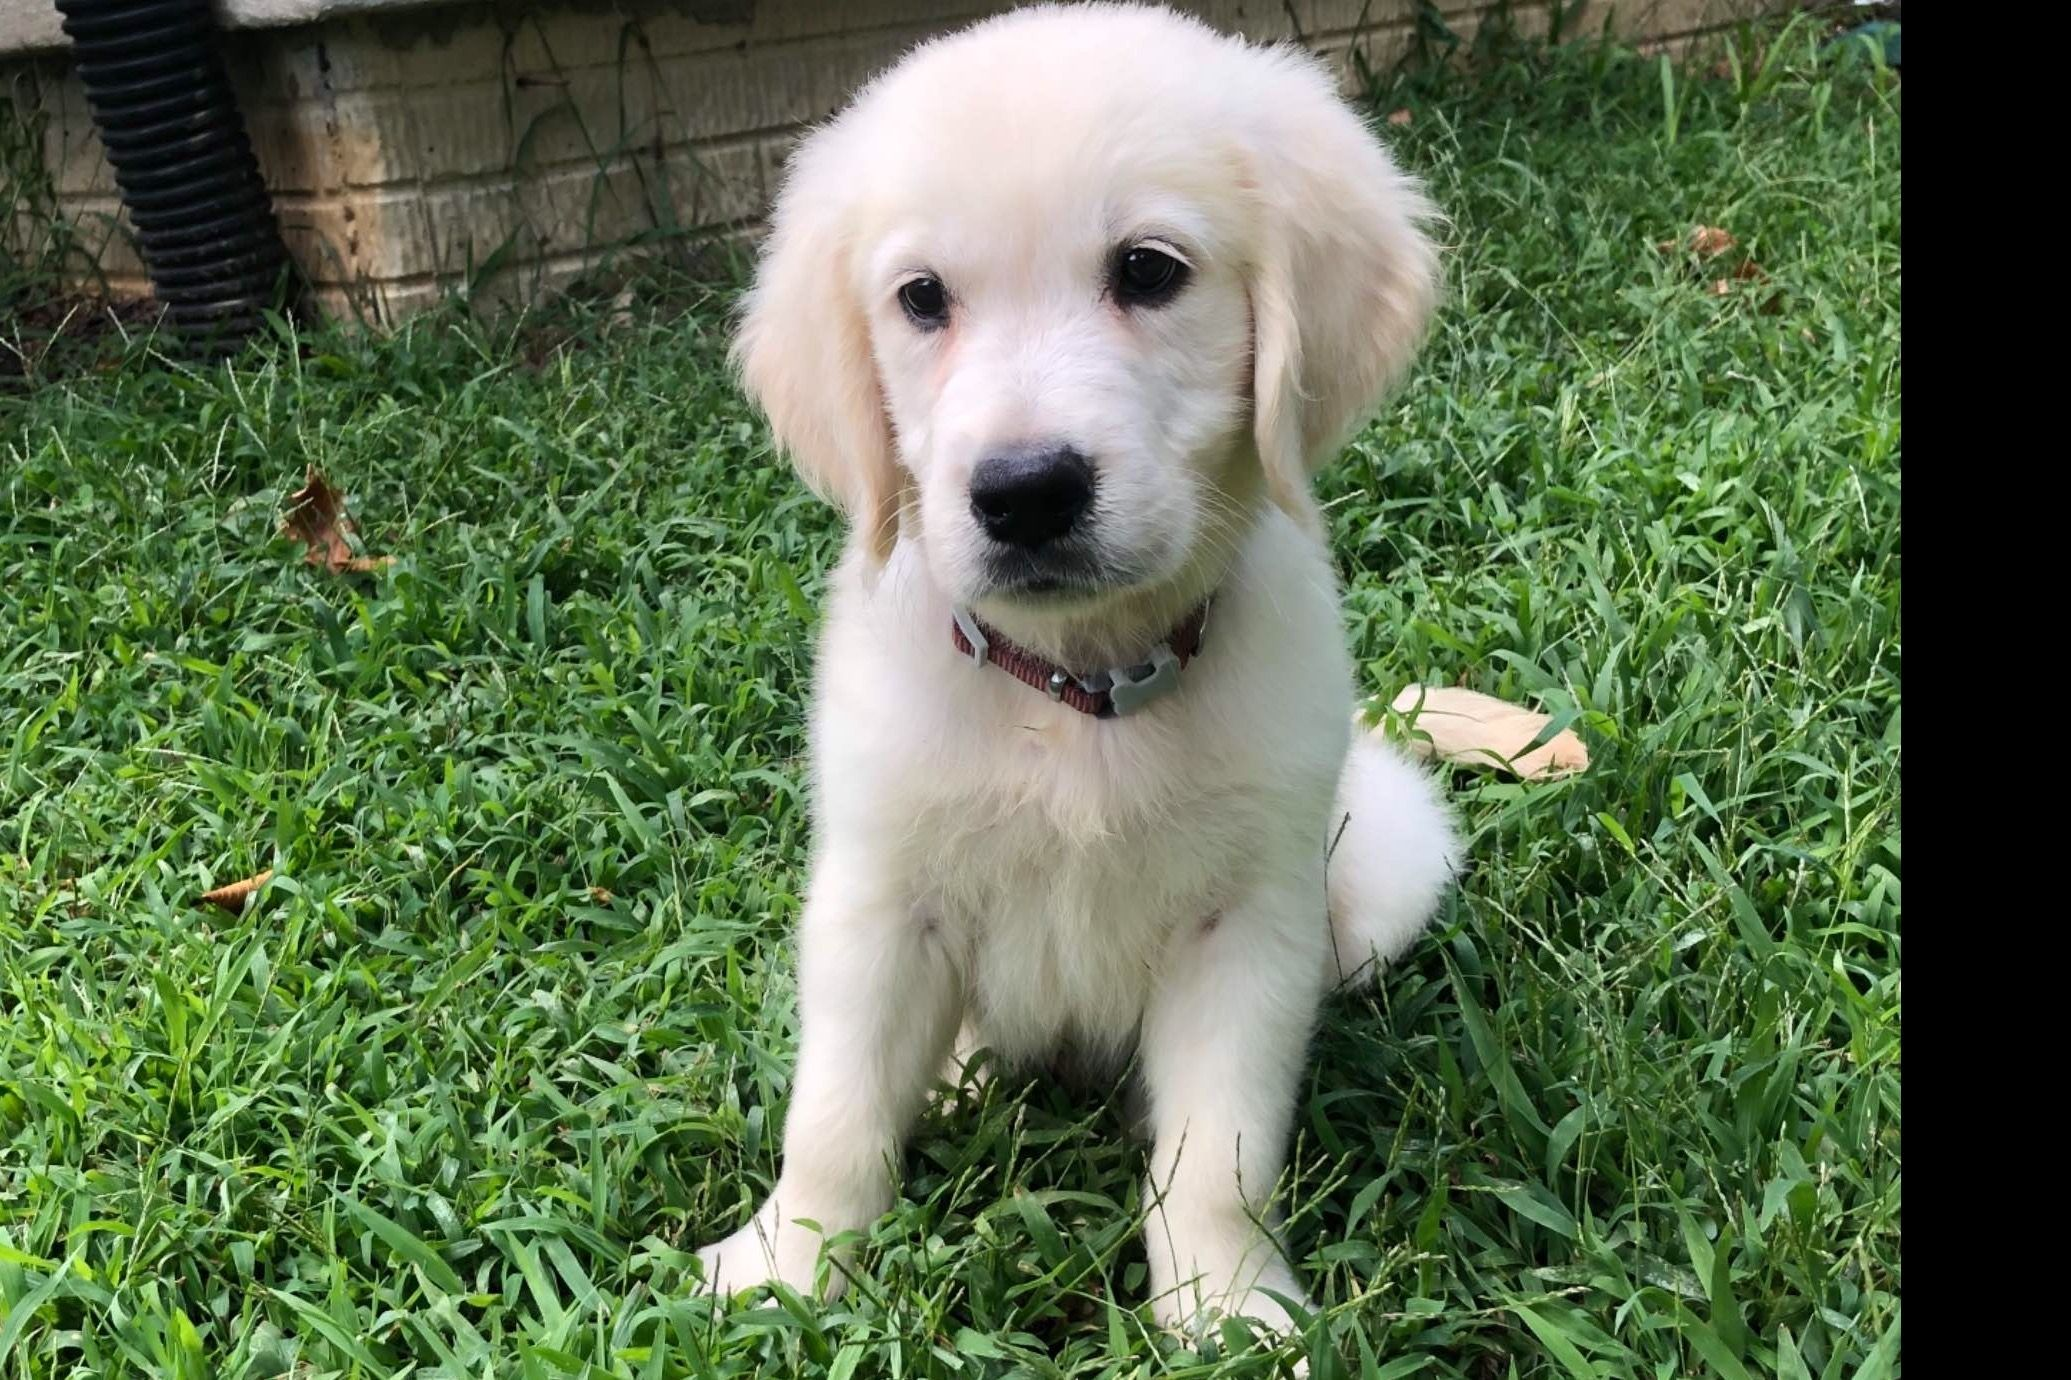 Storybrooke Golden S Has Golden Retriever Puppies For Sale In